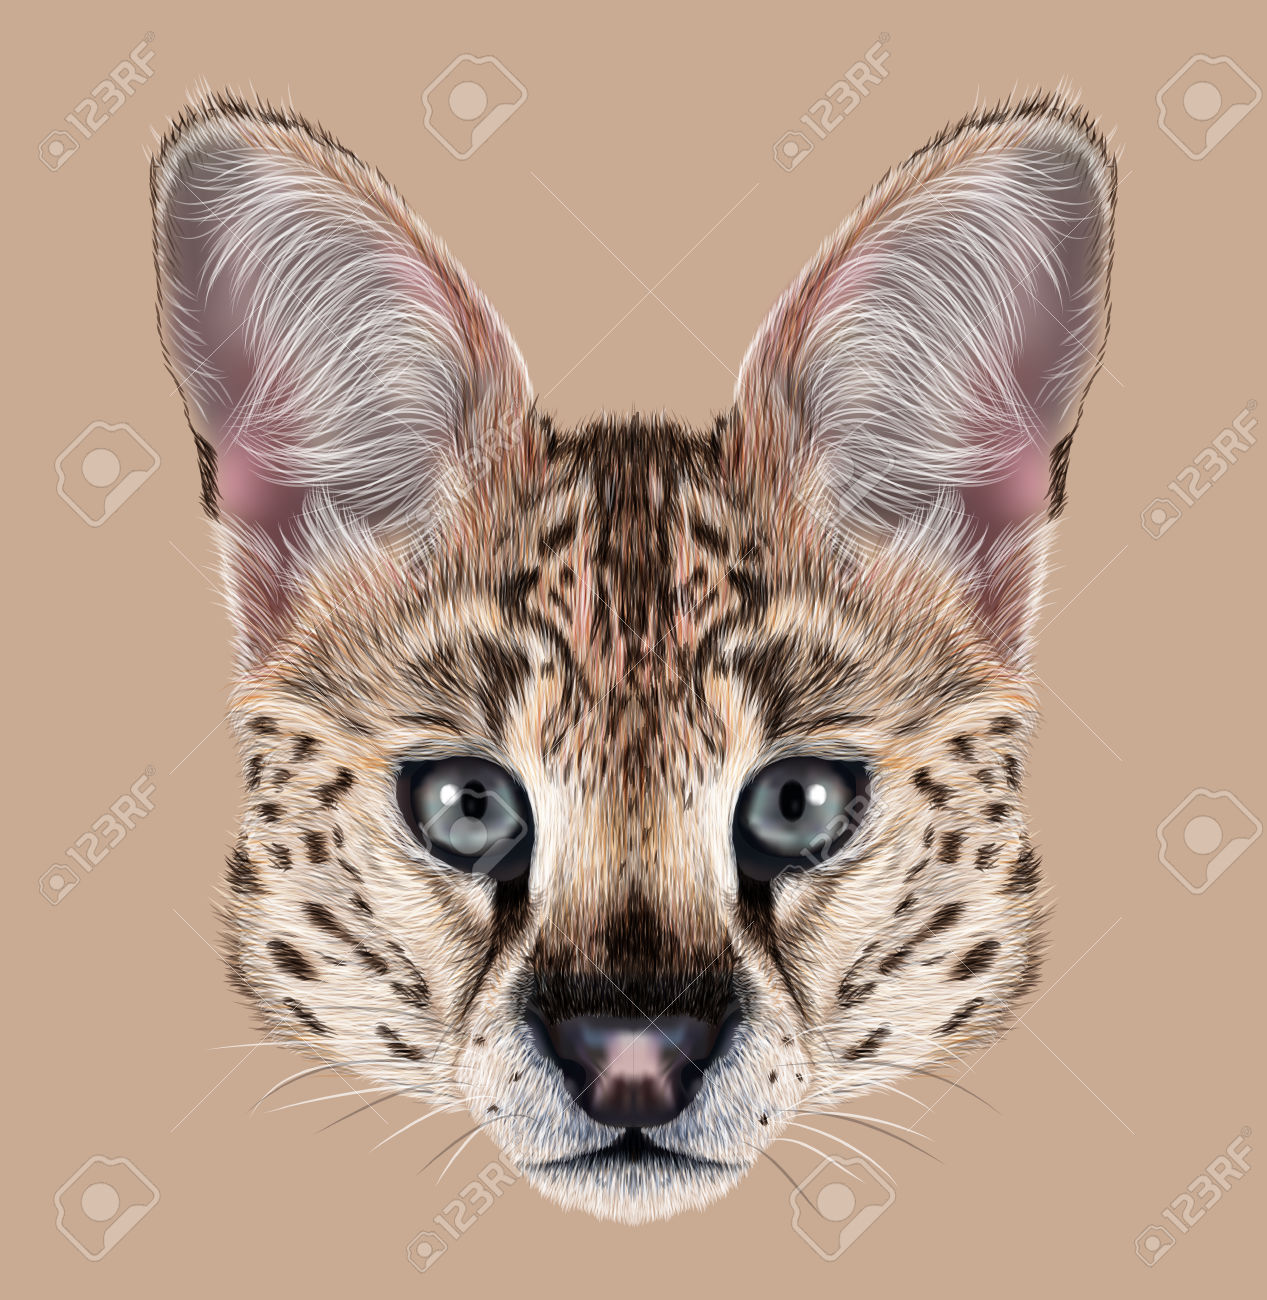 Serval clipart #19, Download drawings